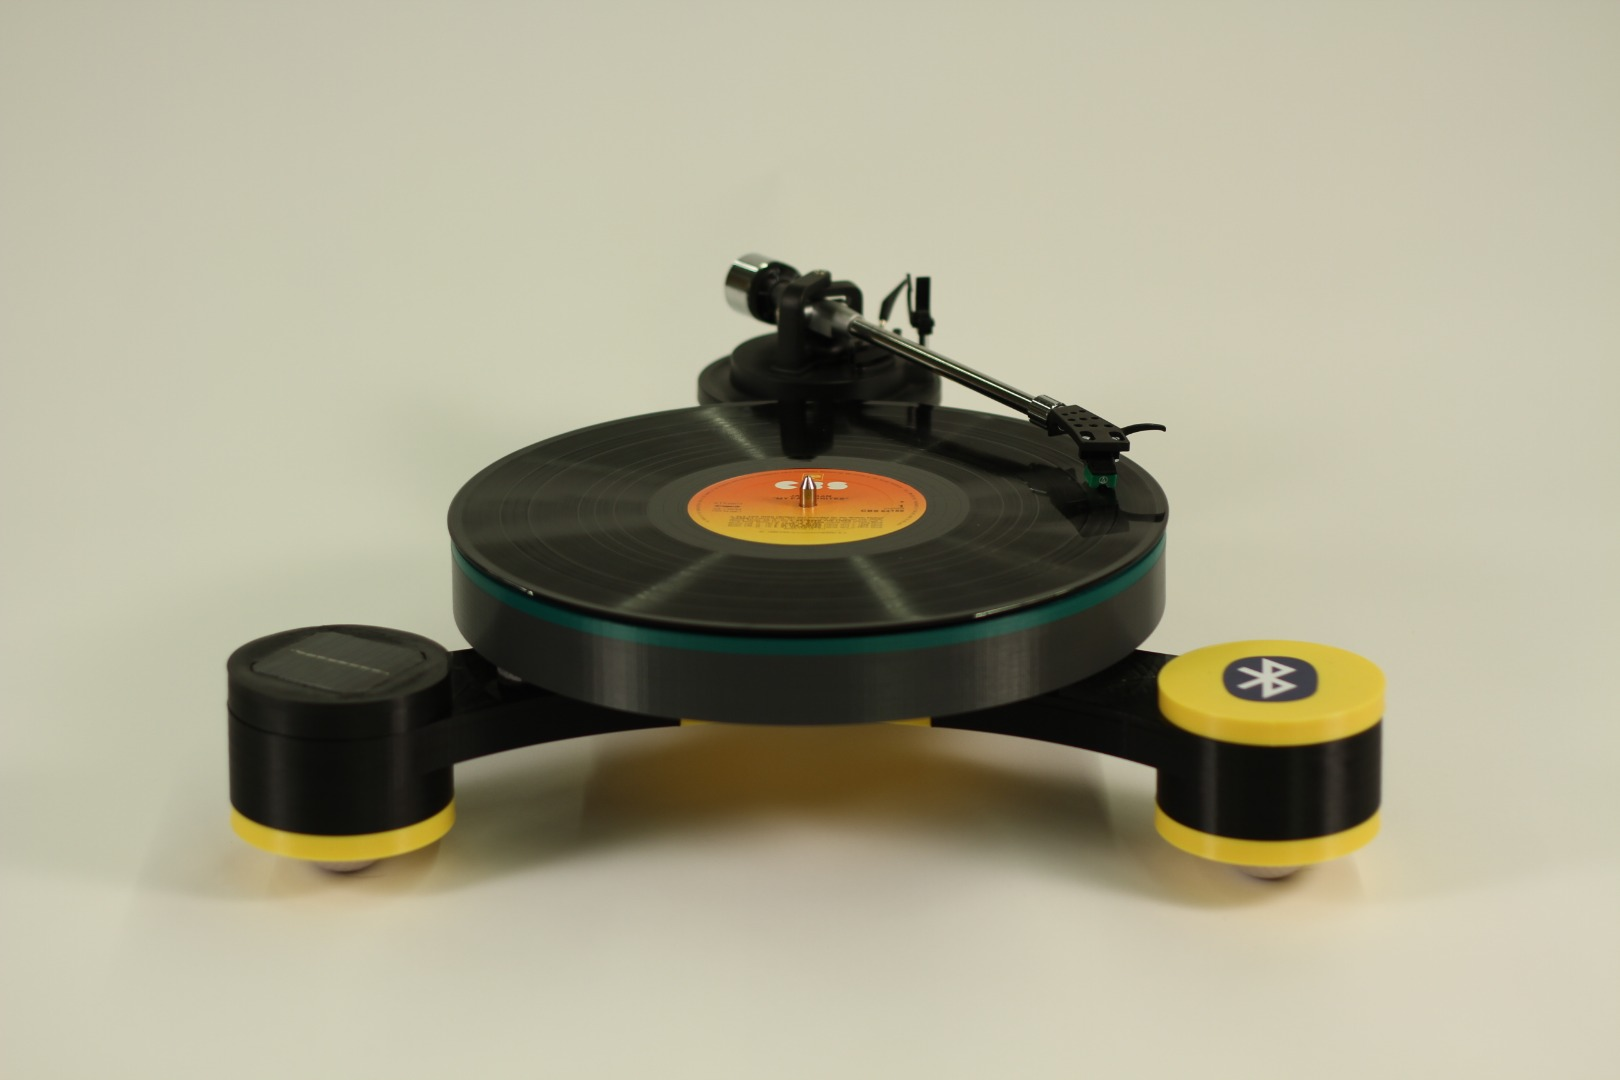 Modular Lenco-MD turntable can be 3D-printed and assembled at home